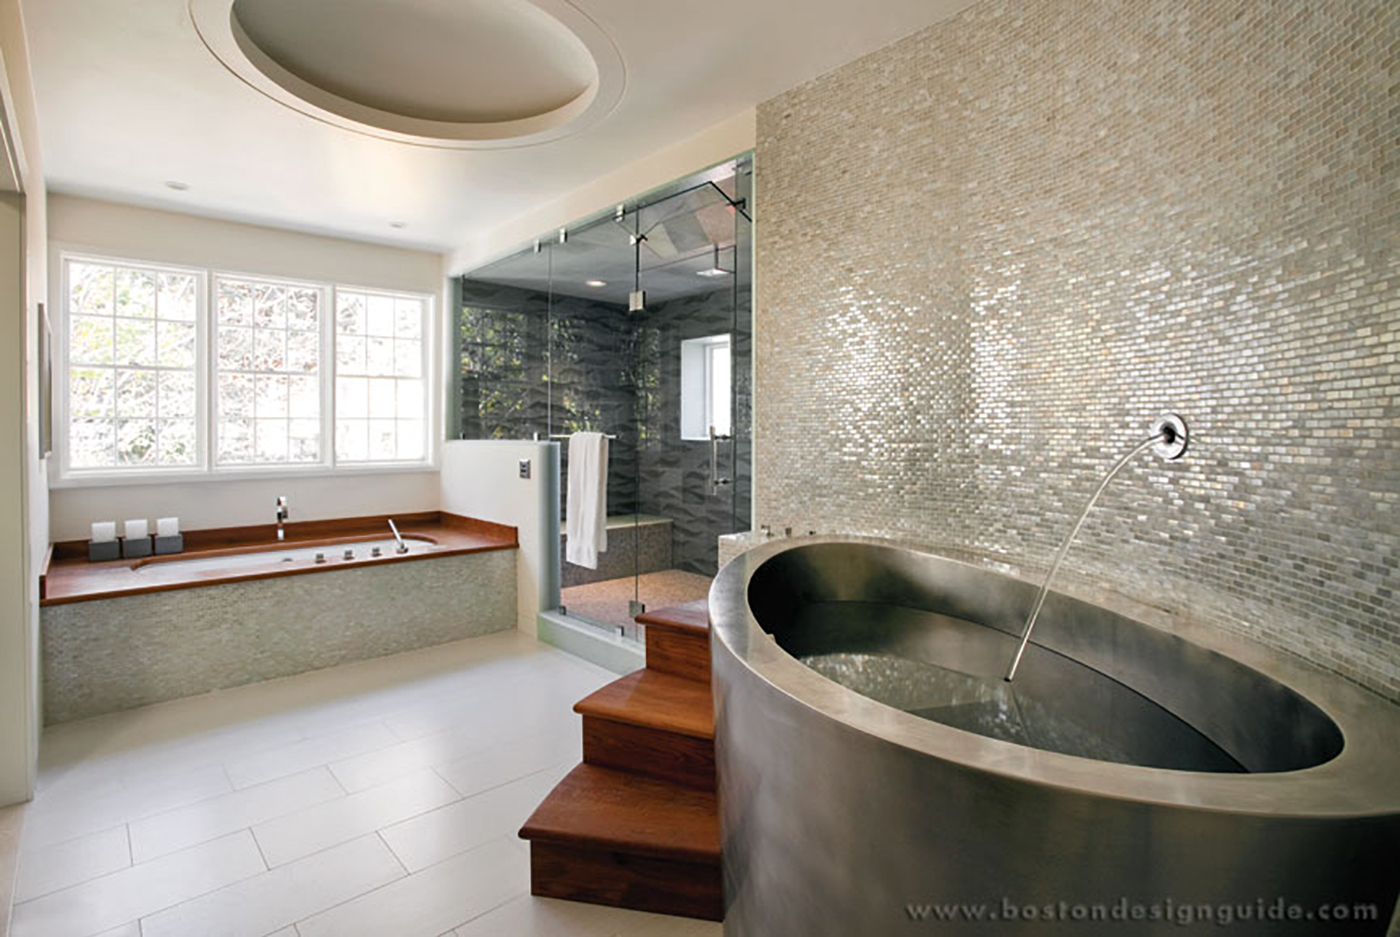 High-end soaking tub